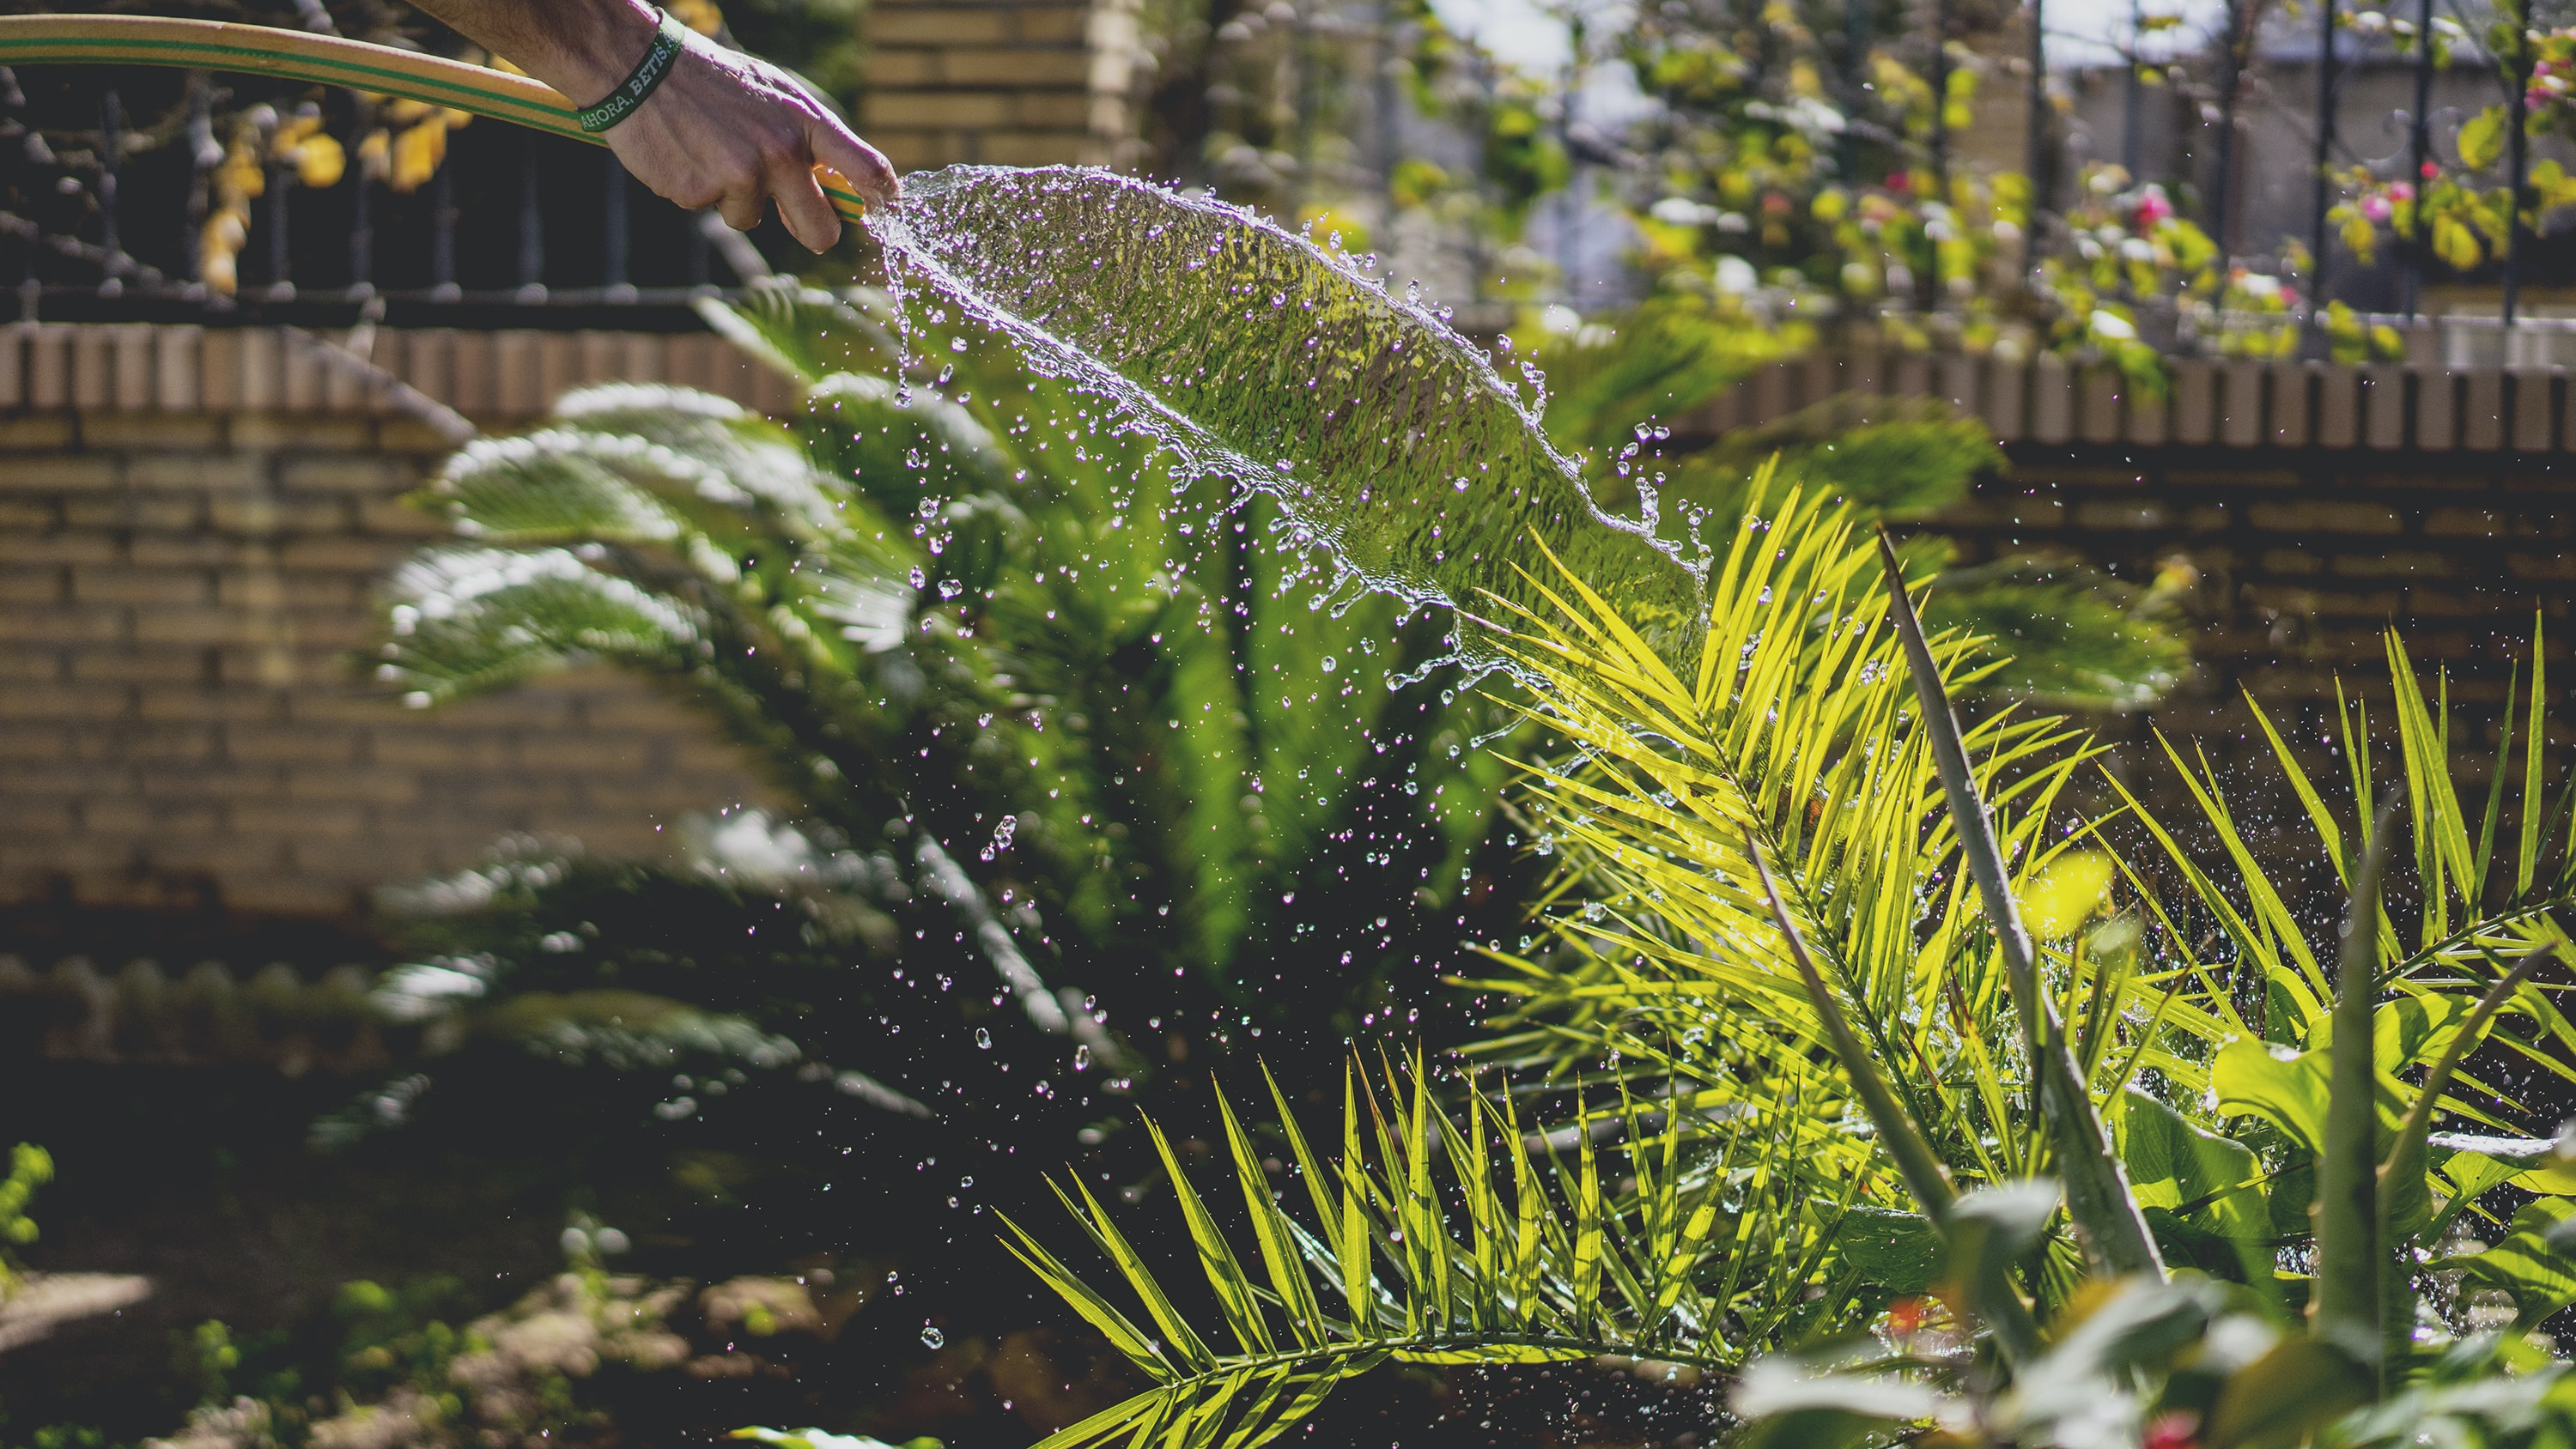 person holding garden hose while watering plant